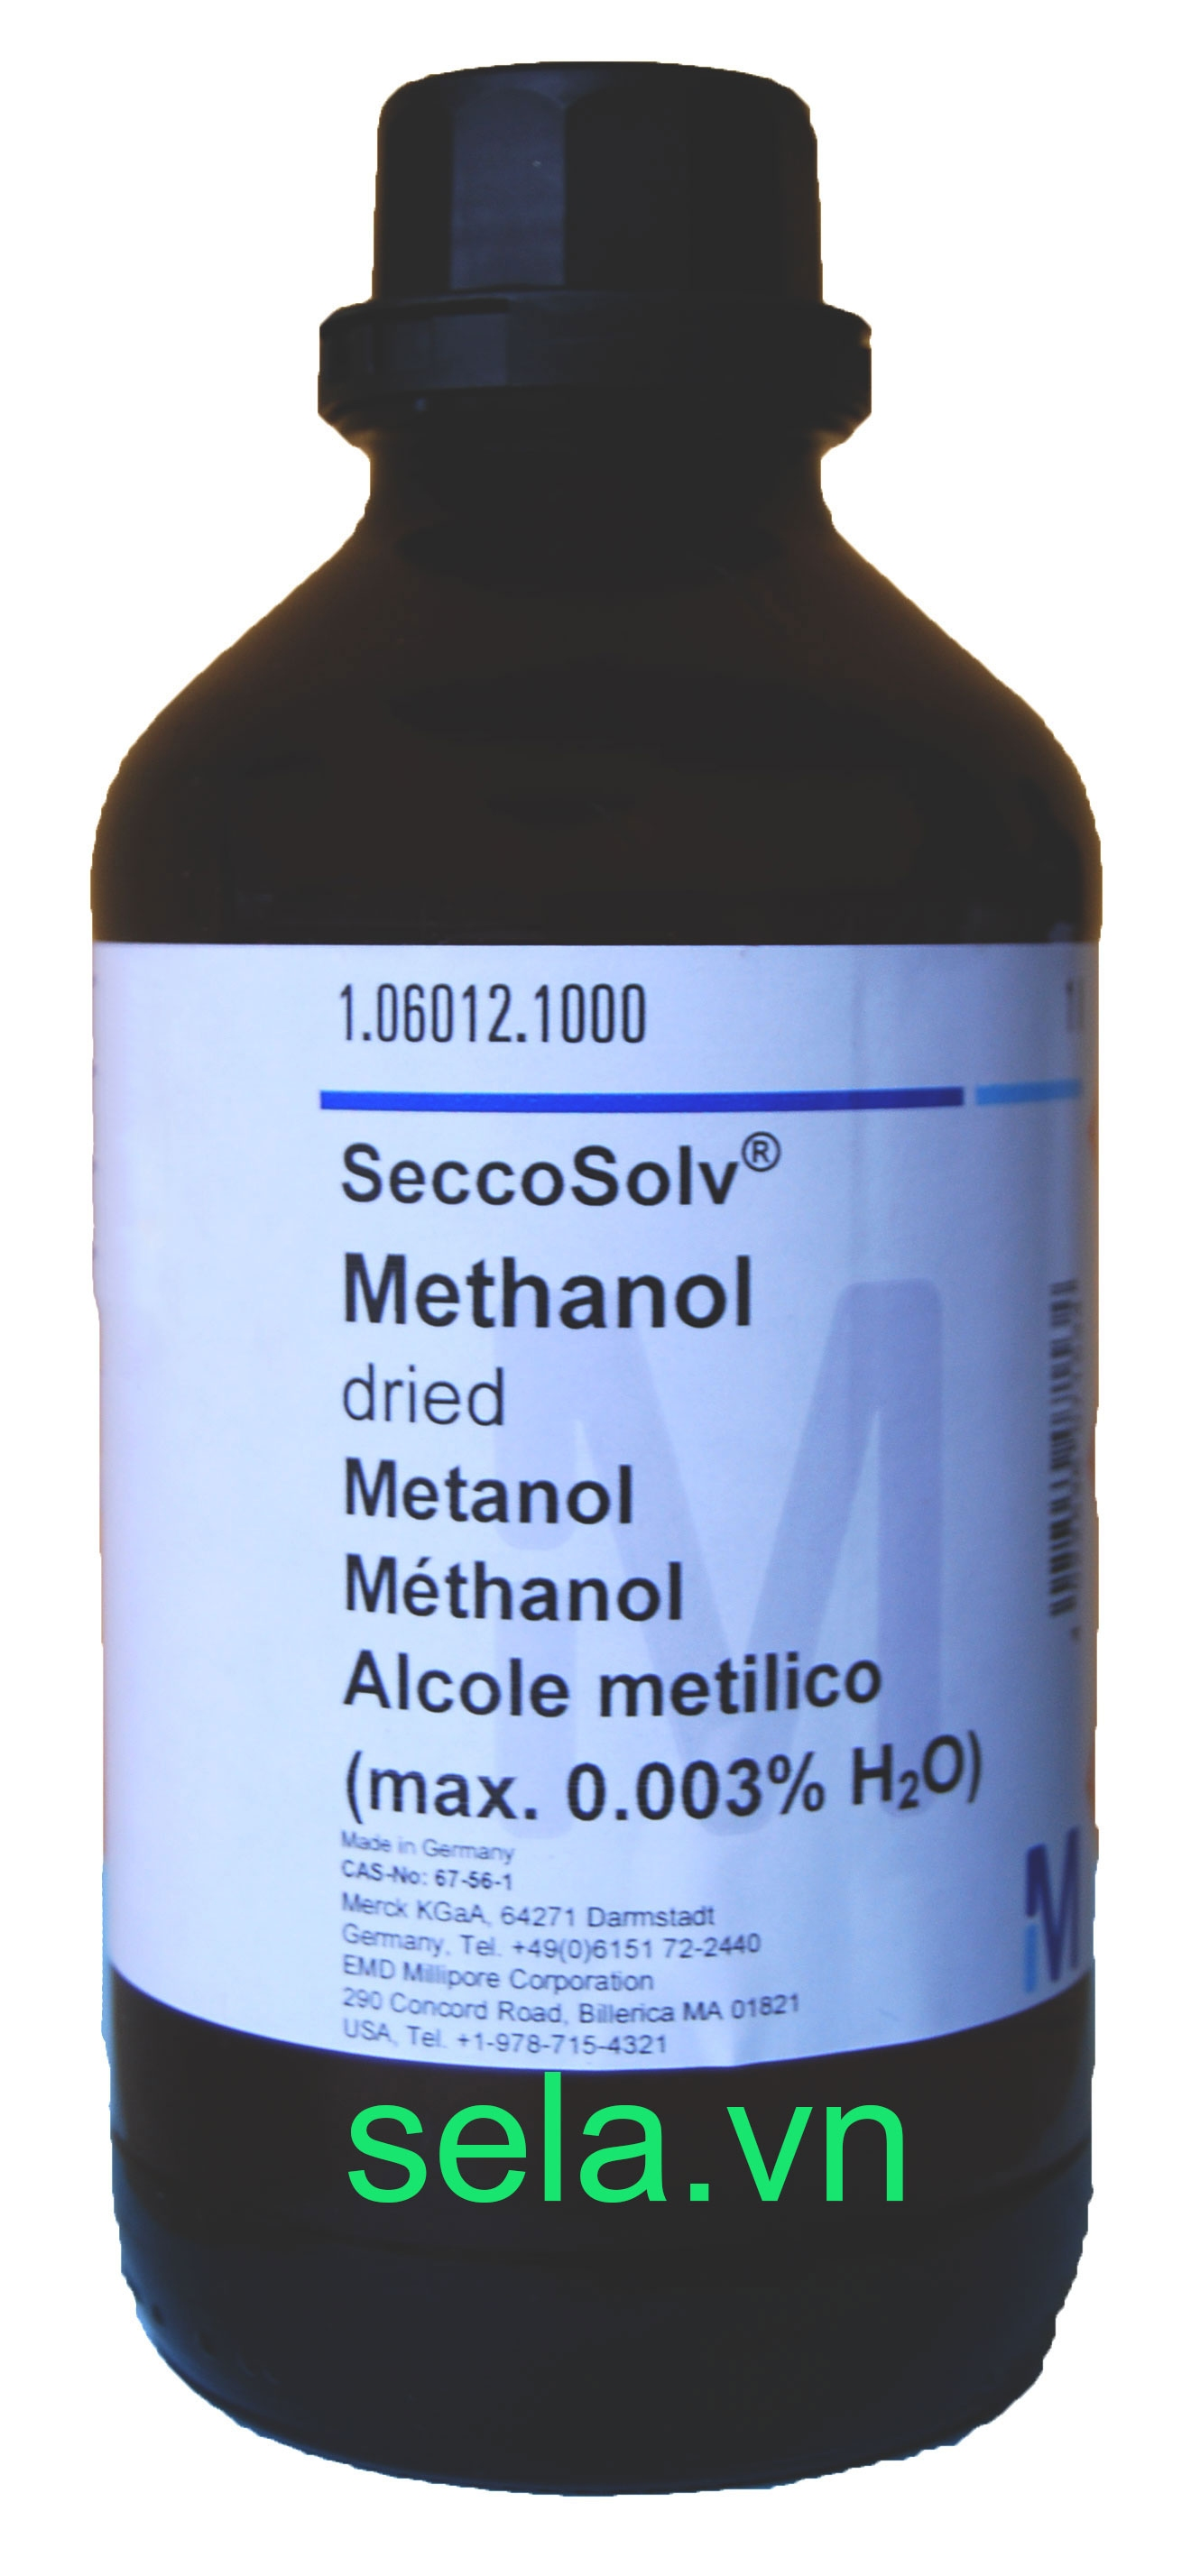 Methanol dried (max. 0.003% H₂O) SeccoSolv®